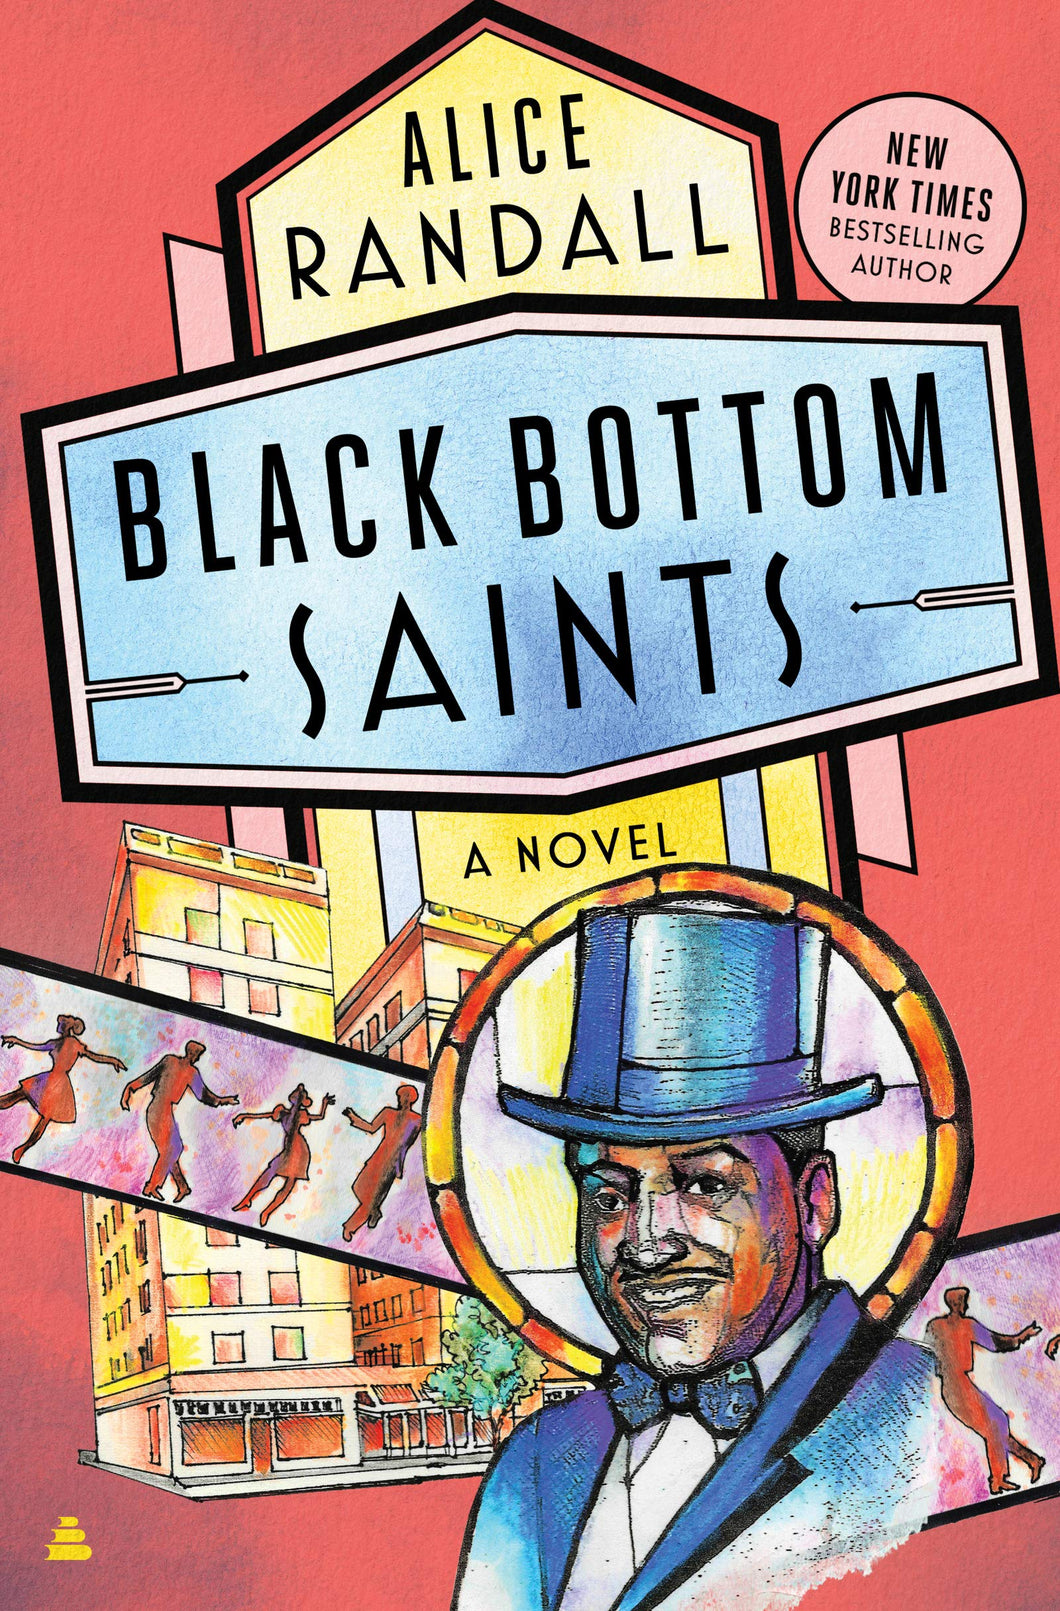 Black Bottom Saints: A Novel by Alice Randall